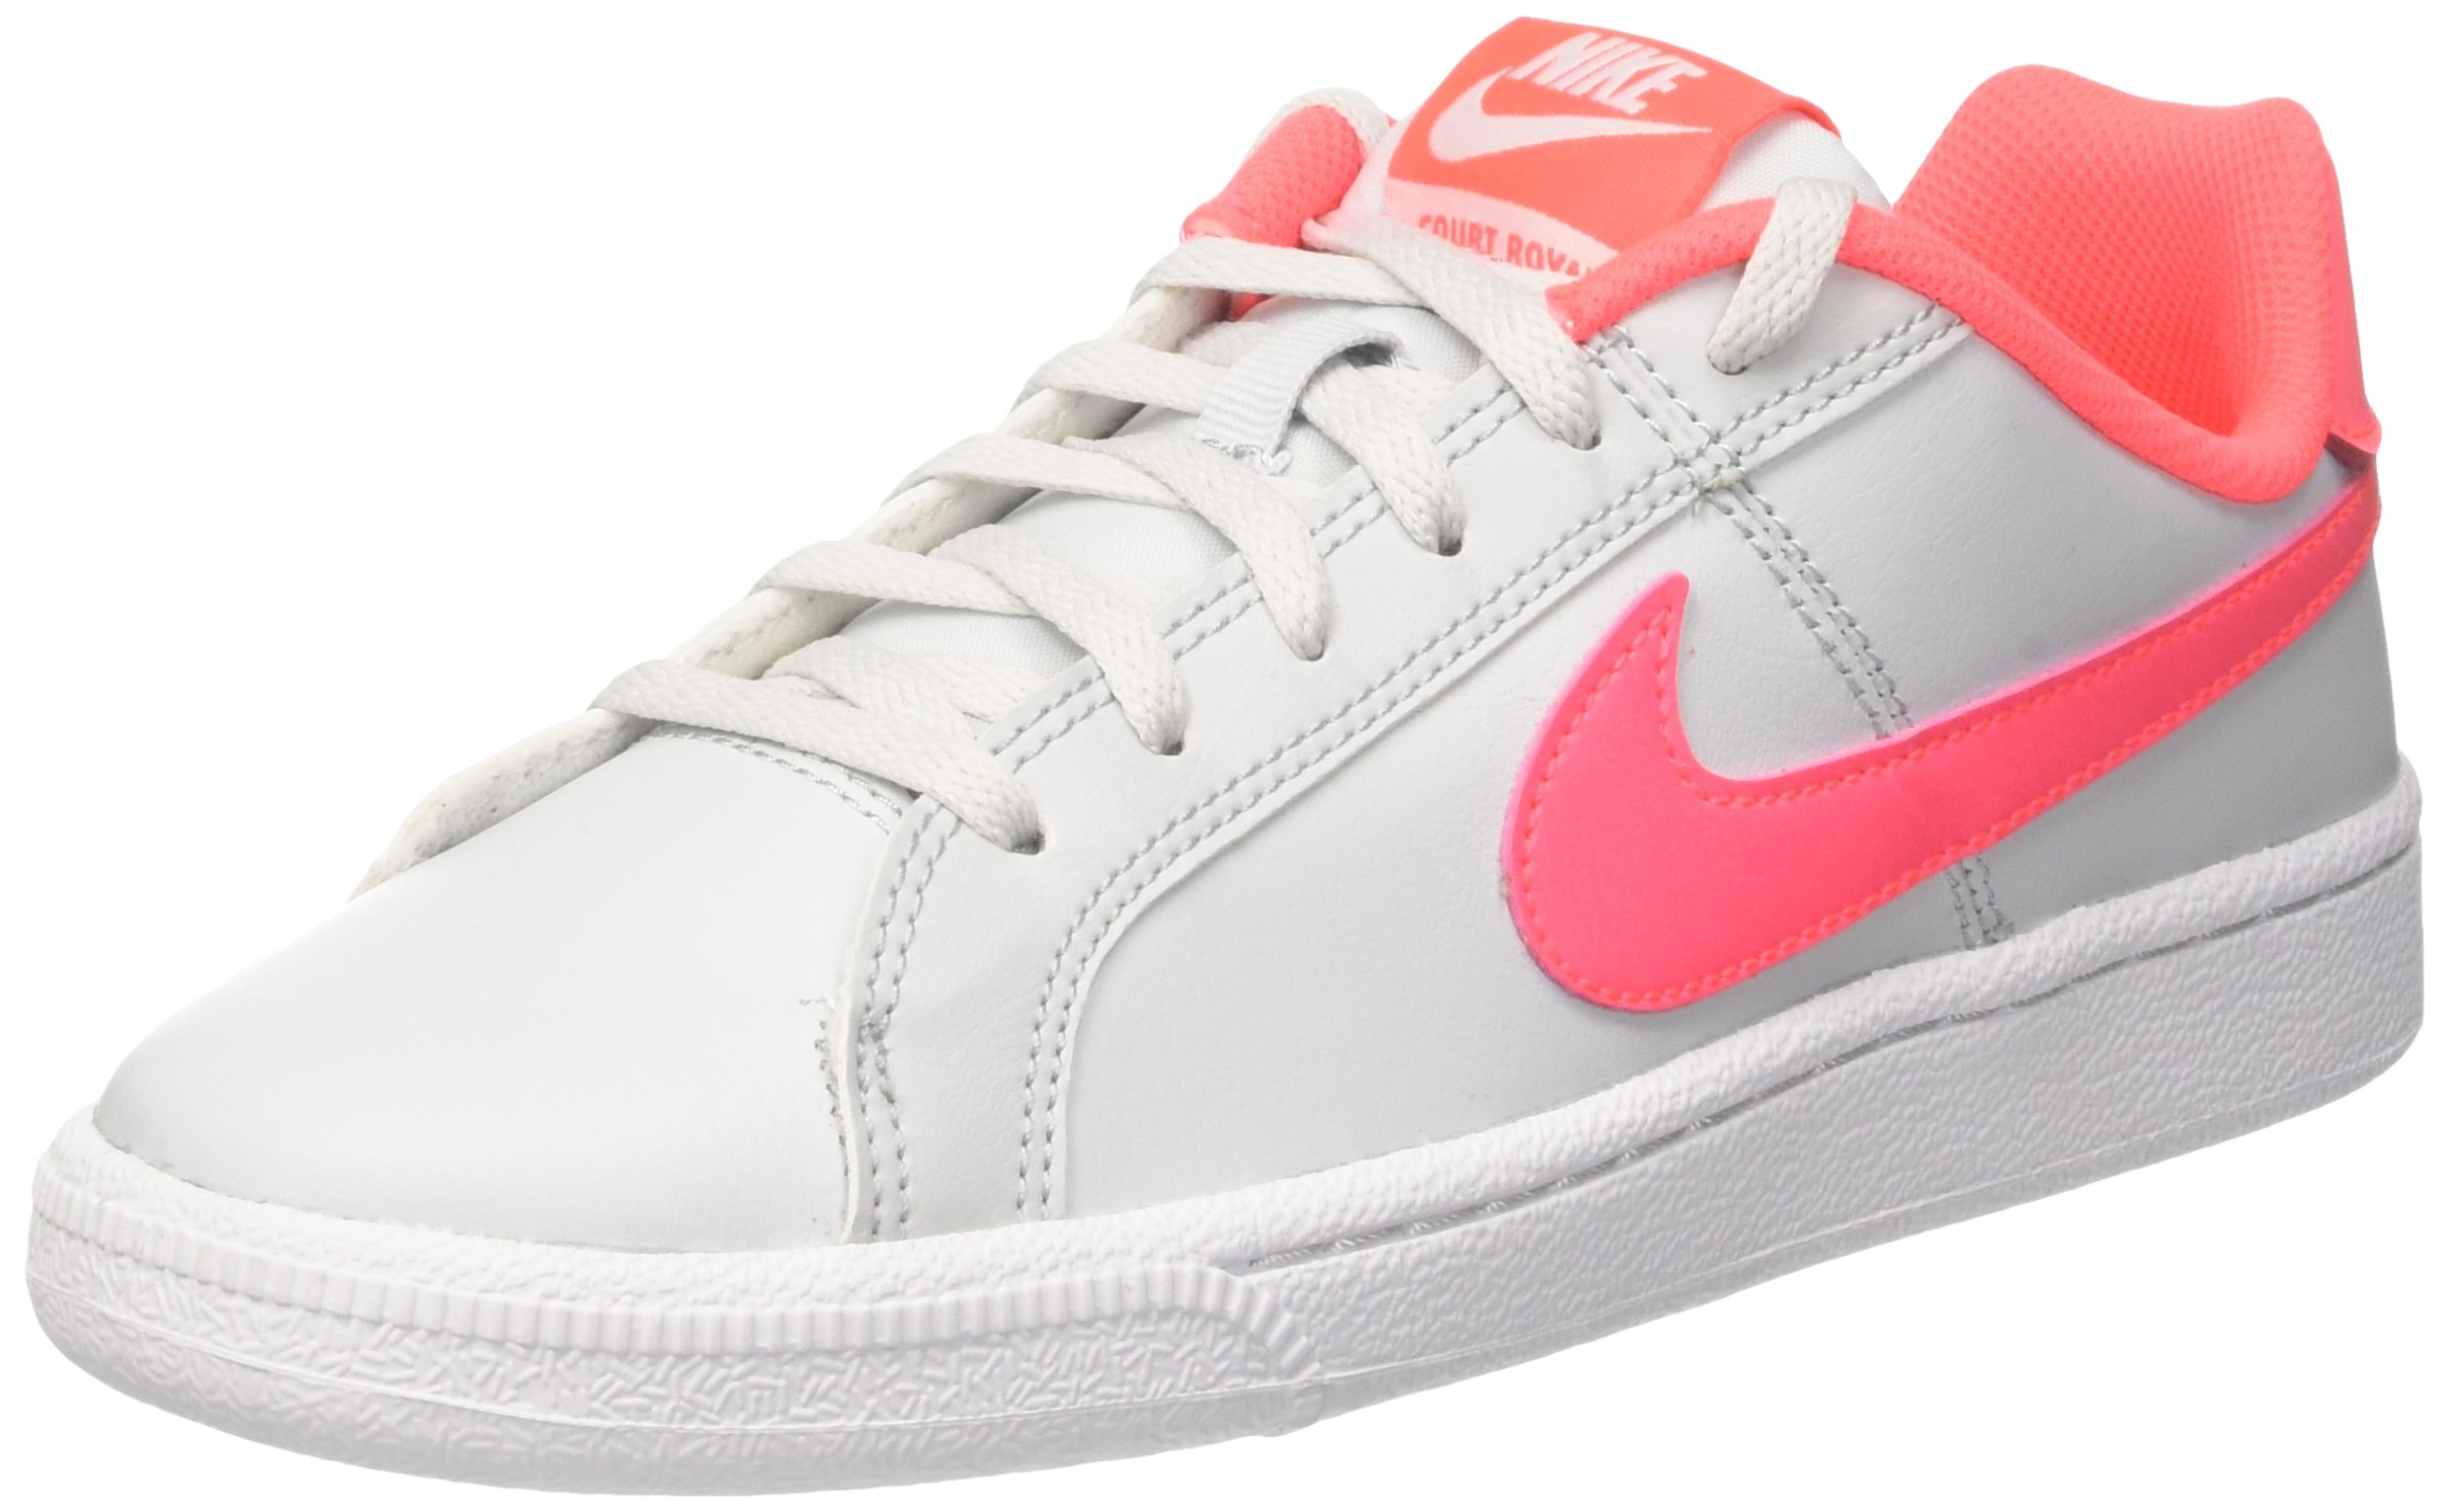 Nike - Court Royale GS - 833654005 - Color: White - Size: 4.5